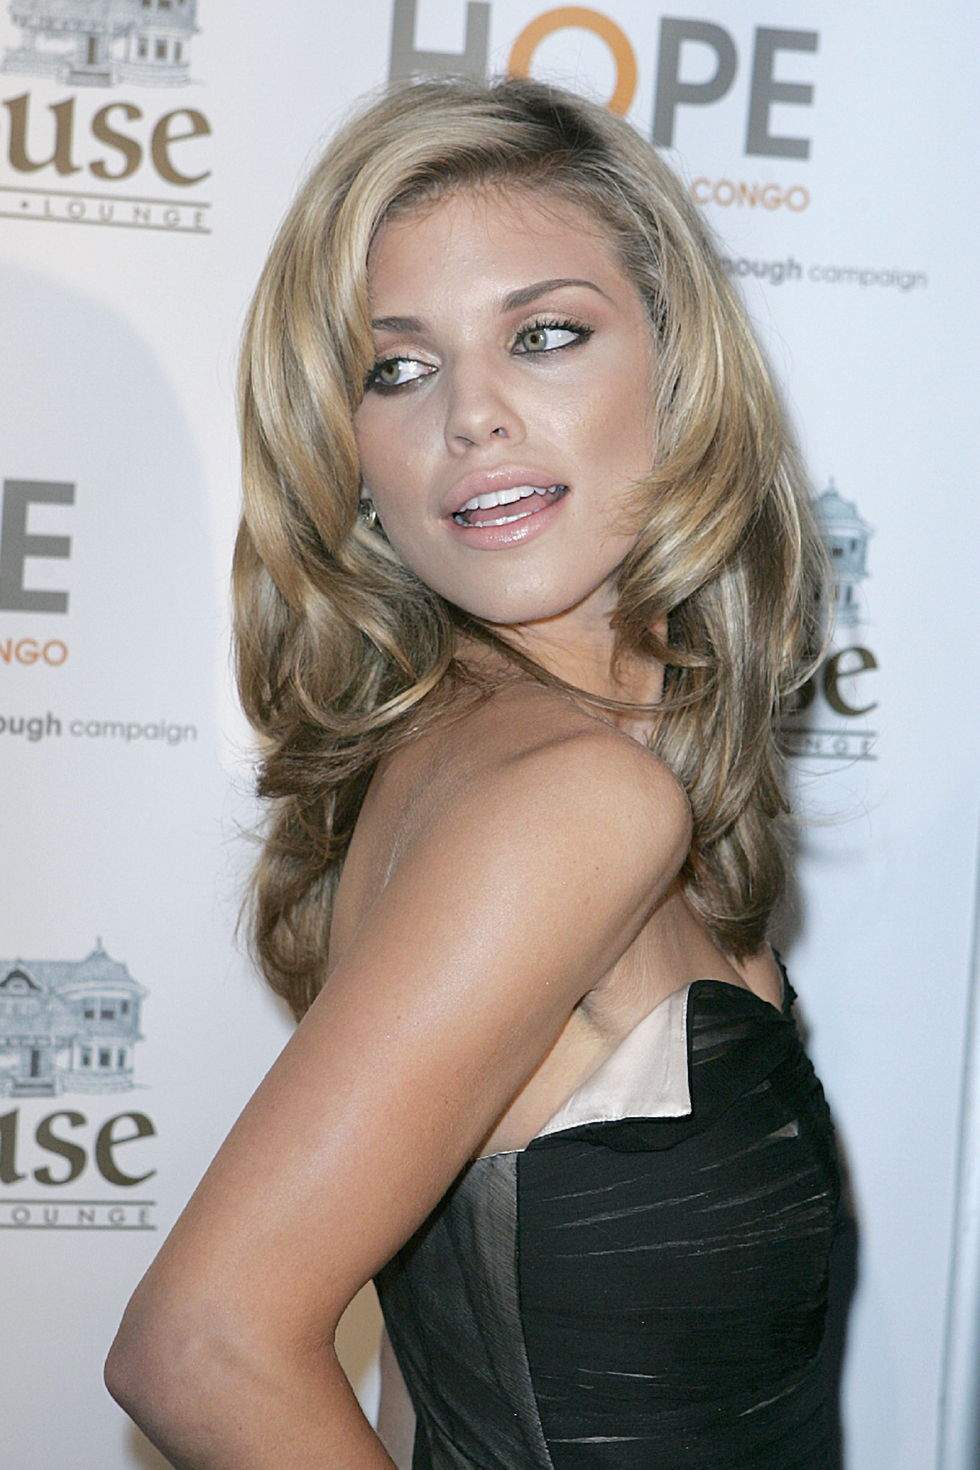 annalynne-mccord-raise-hope-for-the-congo-event-in-hollywood-01